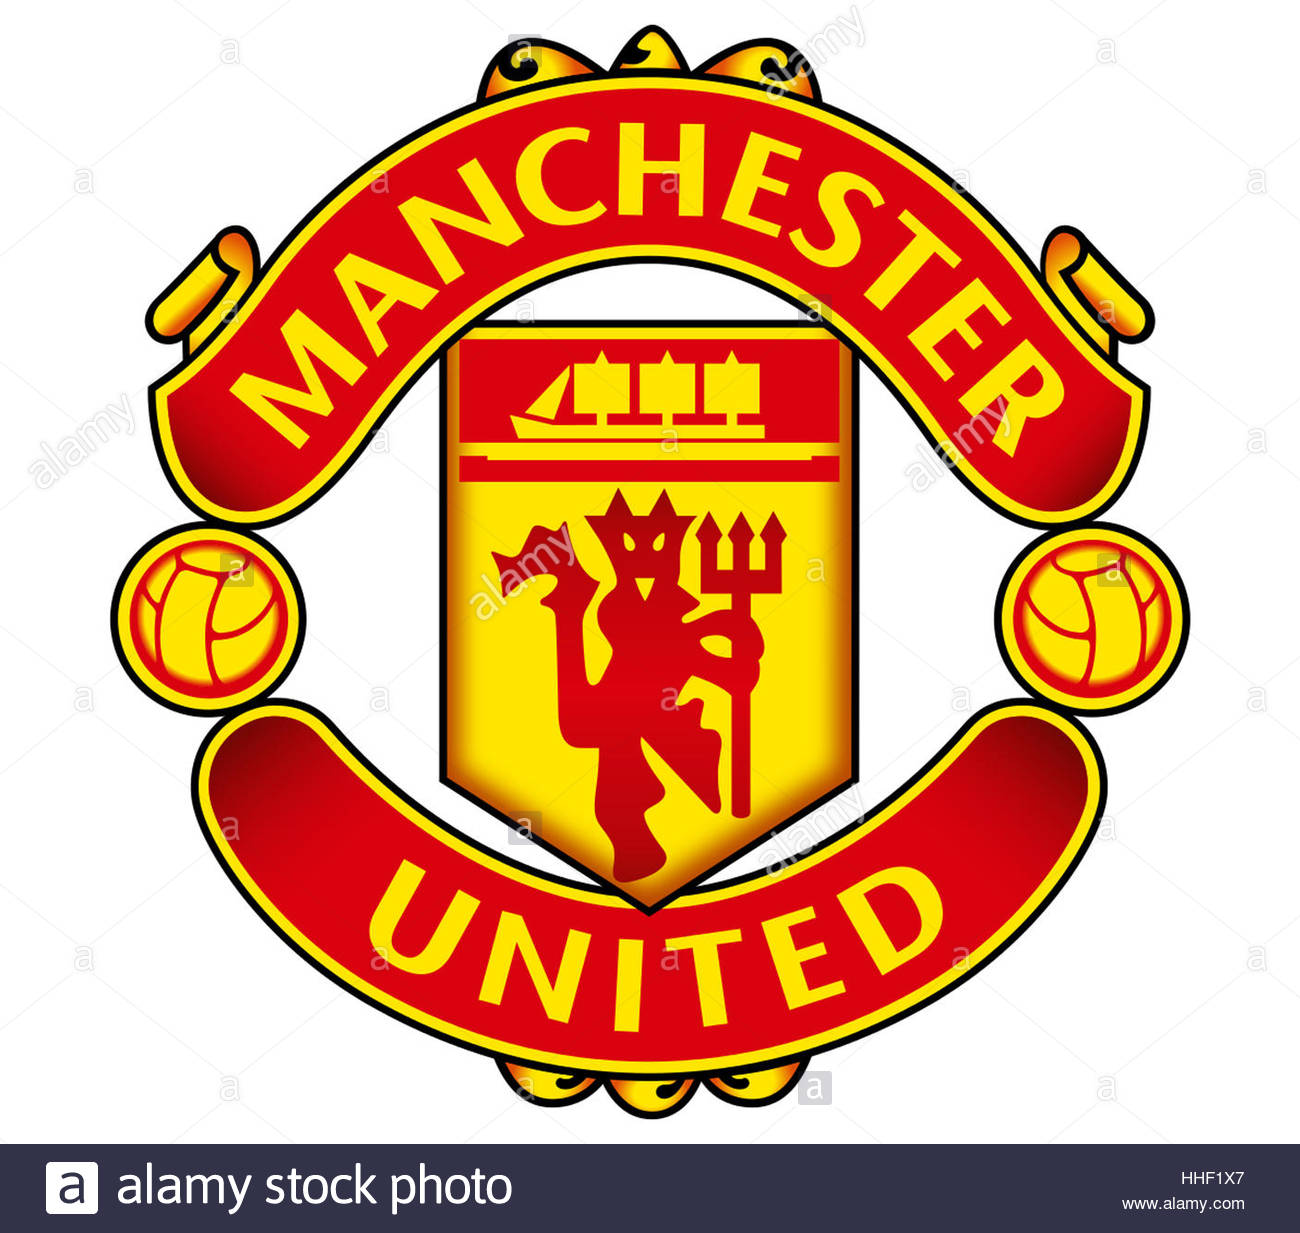 Manchester United icon logo